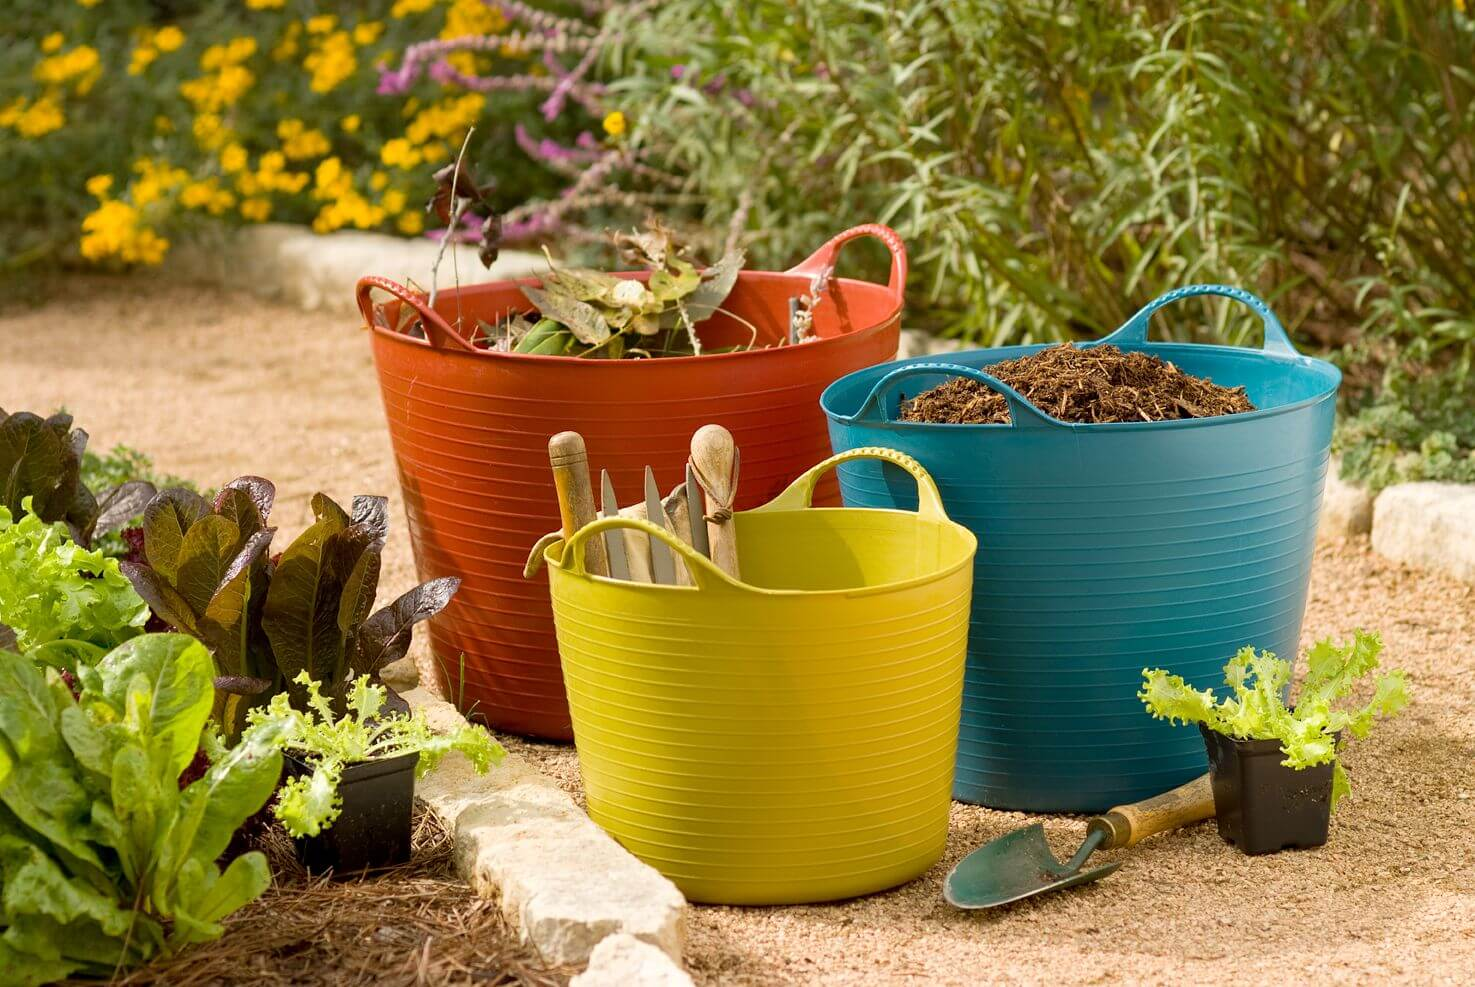 8 good ideas to organize your gardening tools and supplies ...